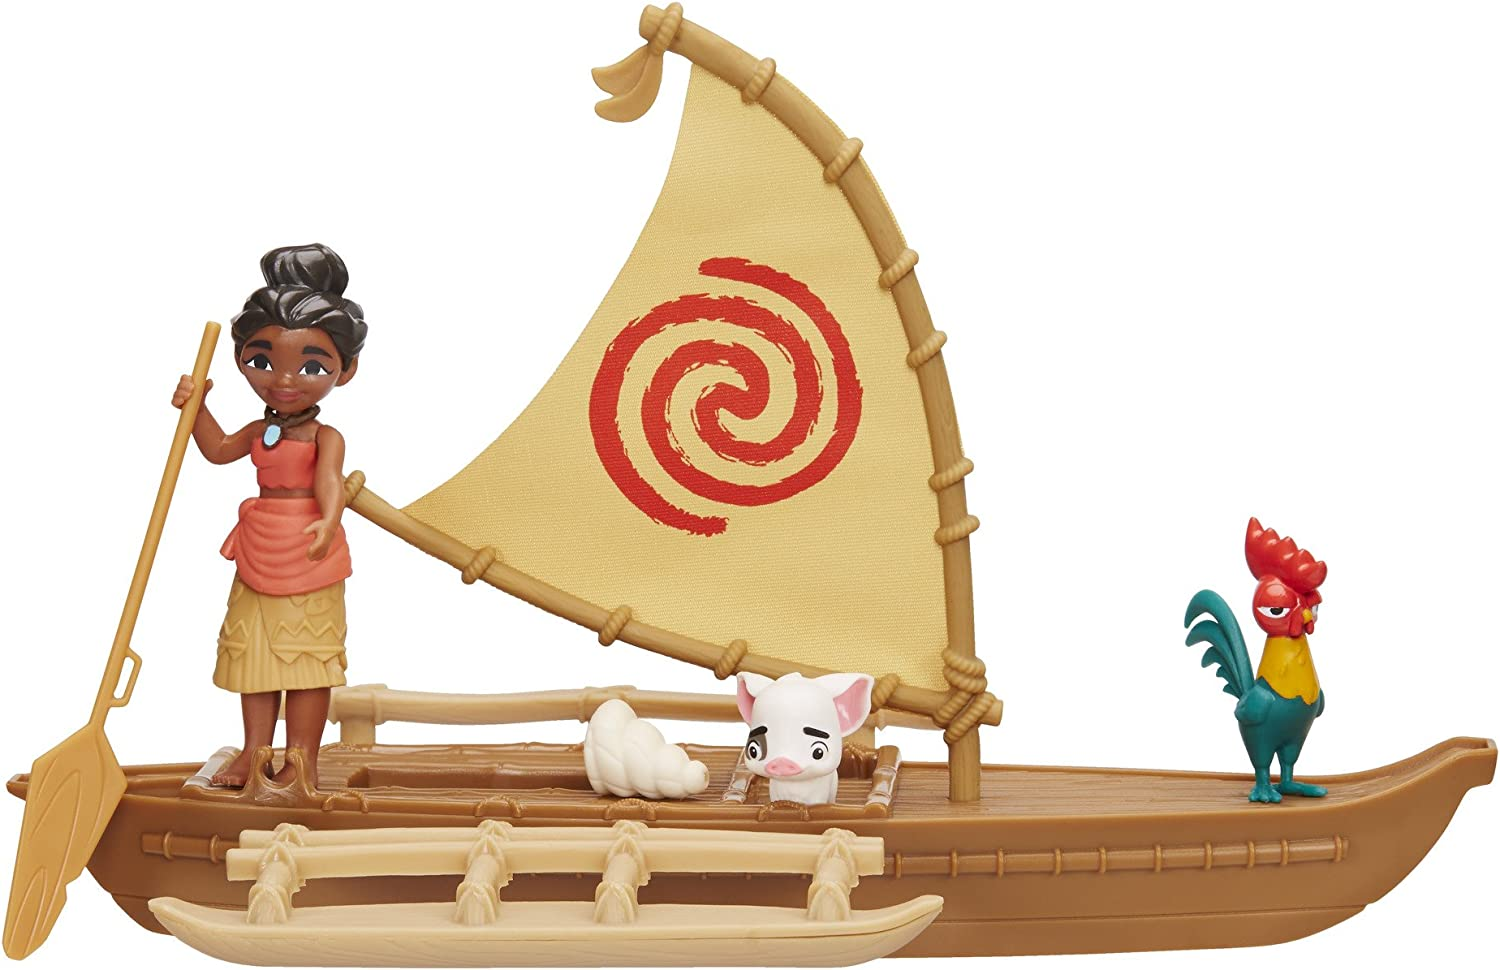 Top 10 Best Moana Toys (2020 Reviews & Buying Guide) 1